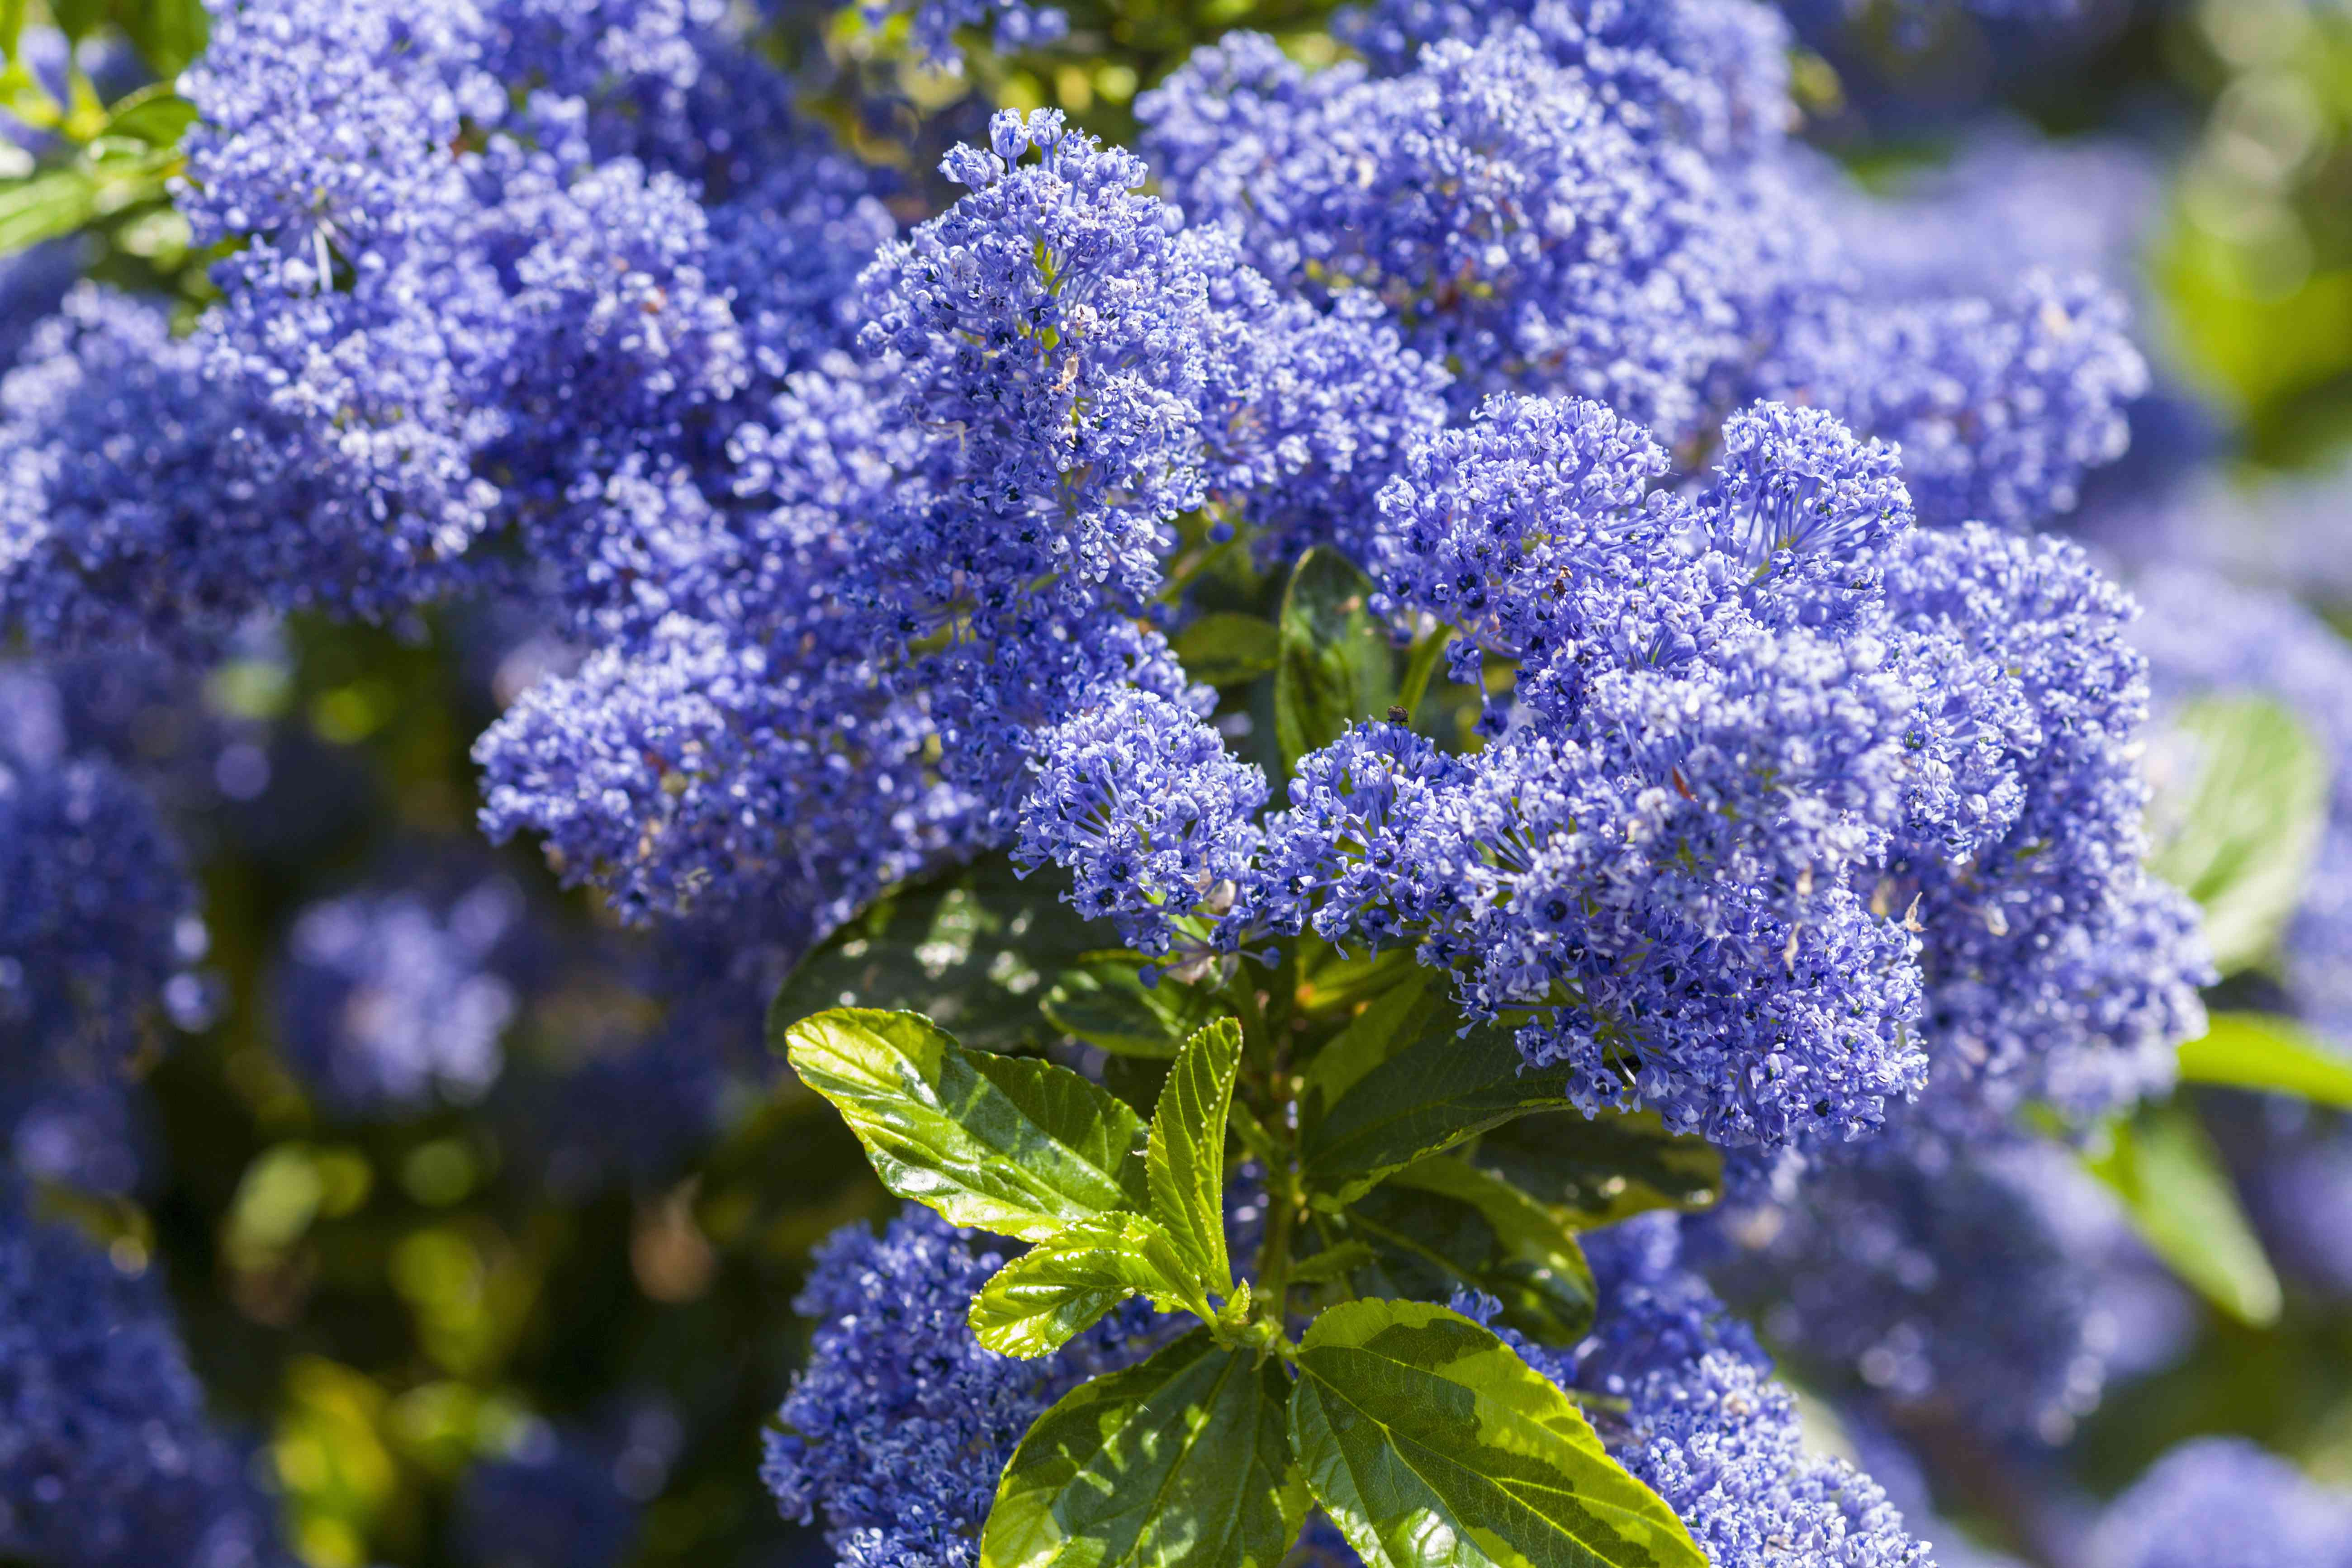 Ceanothus, or Califonian lilac, in flower